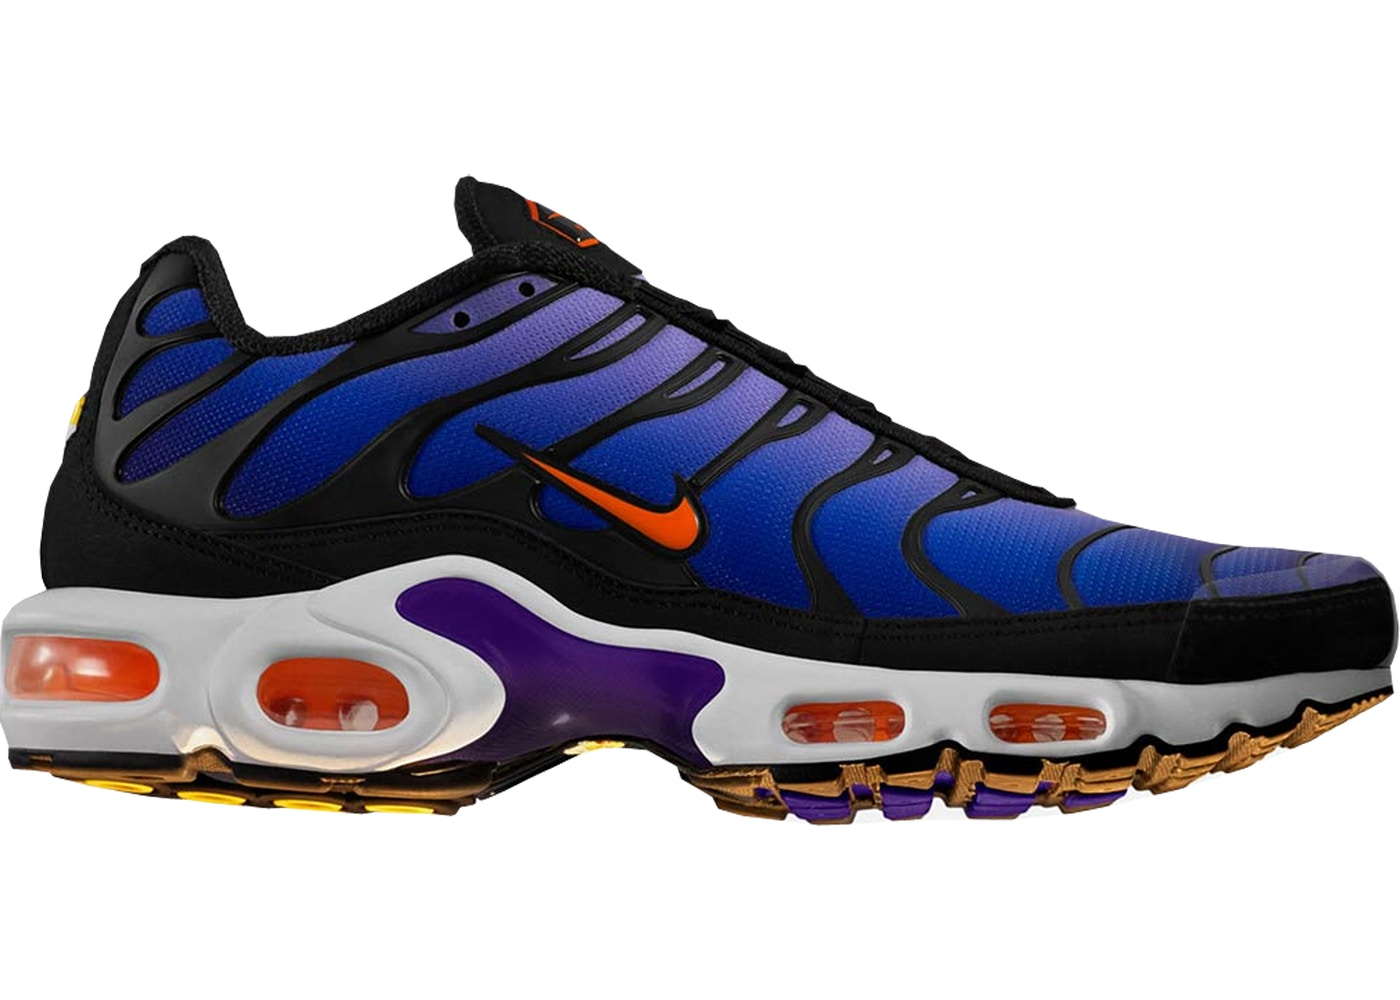 sale retailer 106f8 d4afc Air Max Plus OG Voltage Purple - BQ4629-002